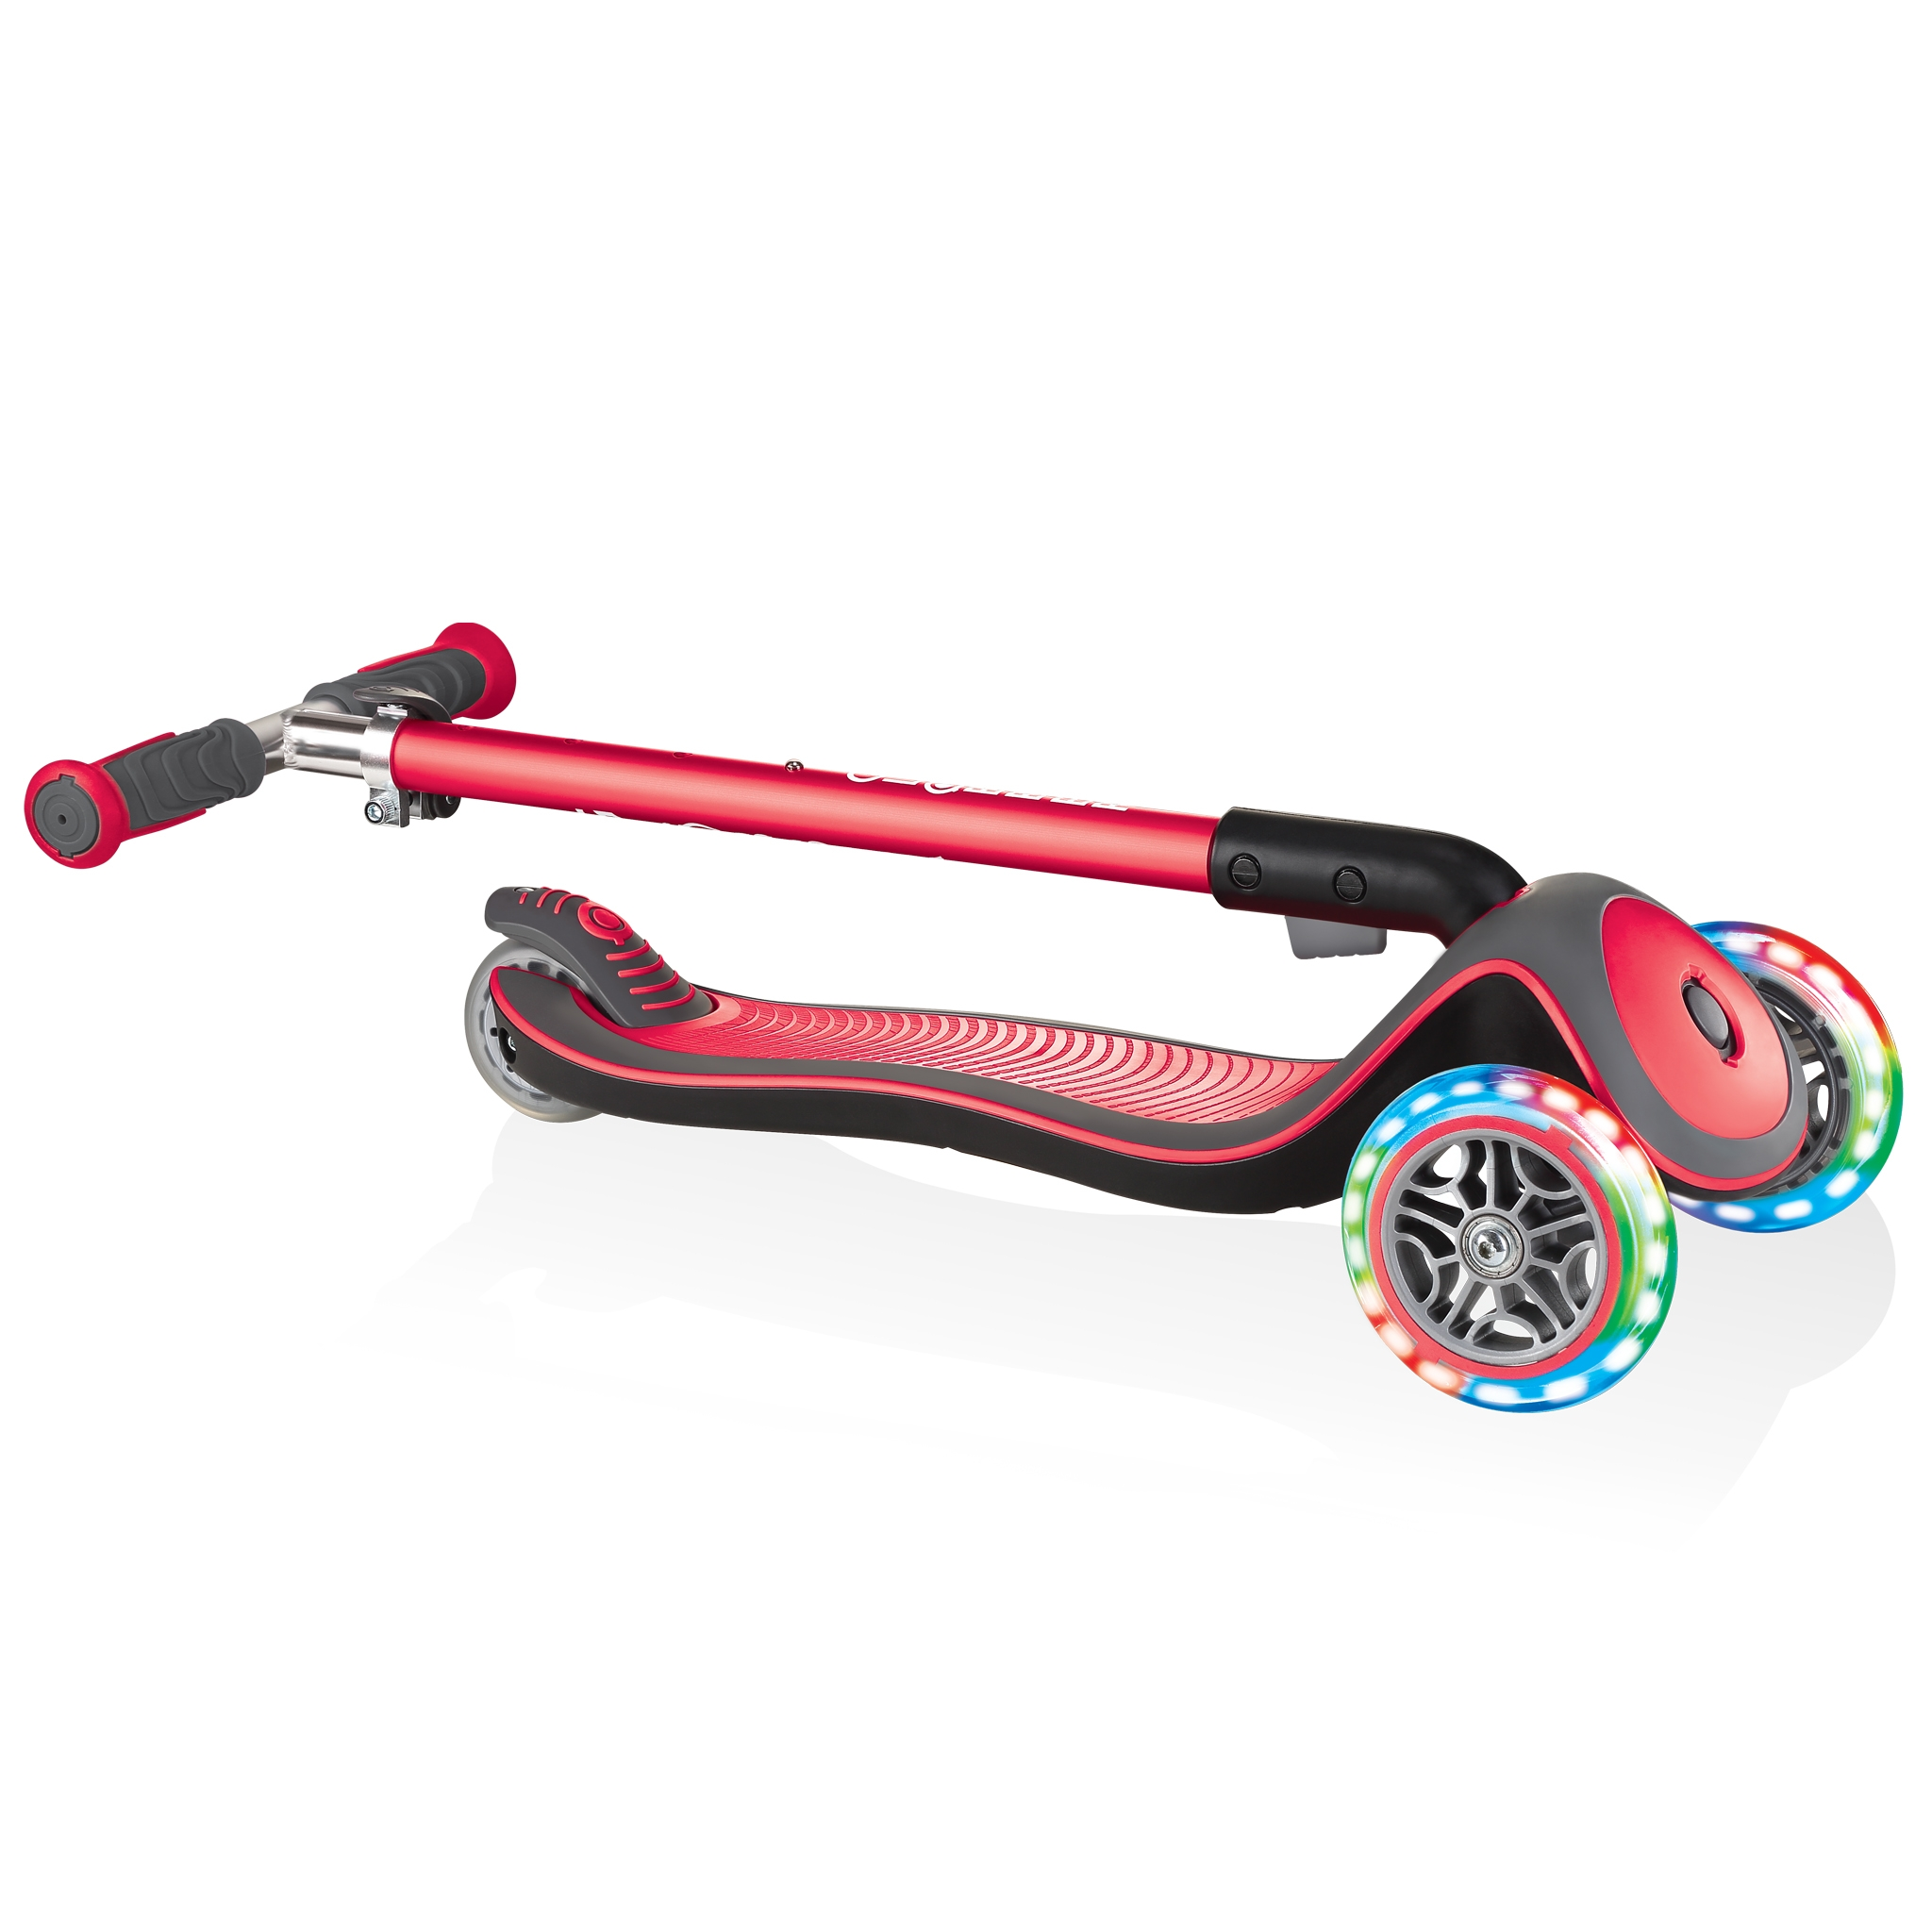 Globber-ELITE-DELUXE-LIGHTS-3-wheel-foldable-scooter-for-kids-with-light-up-scooter-wheels-new-red